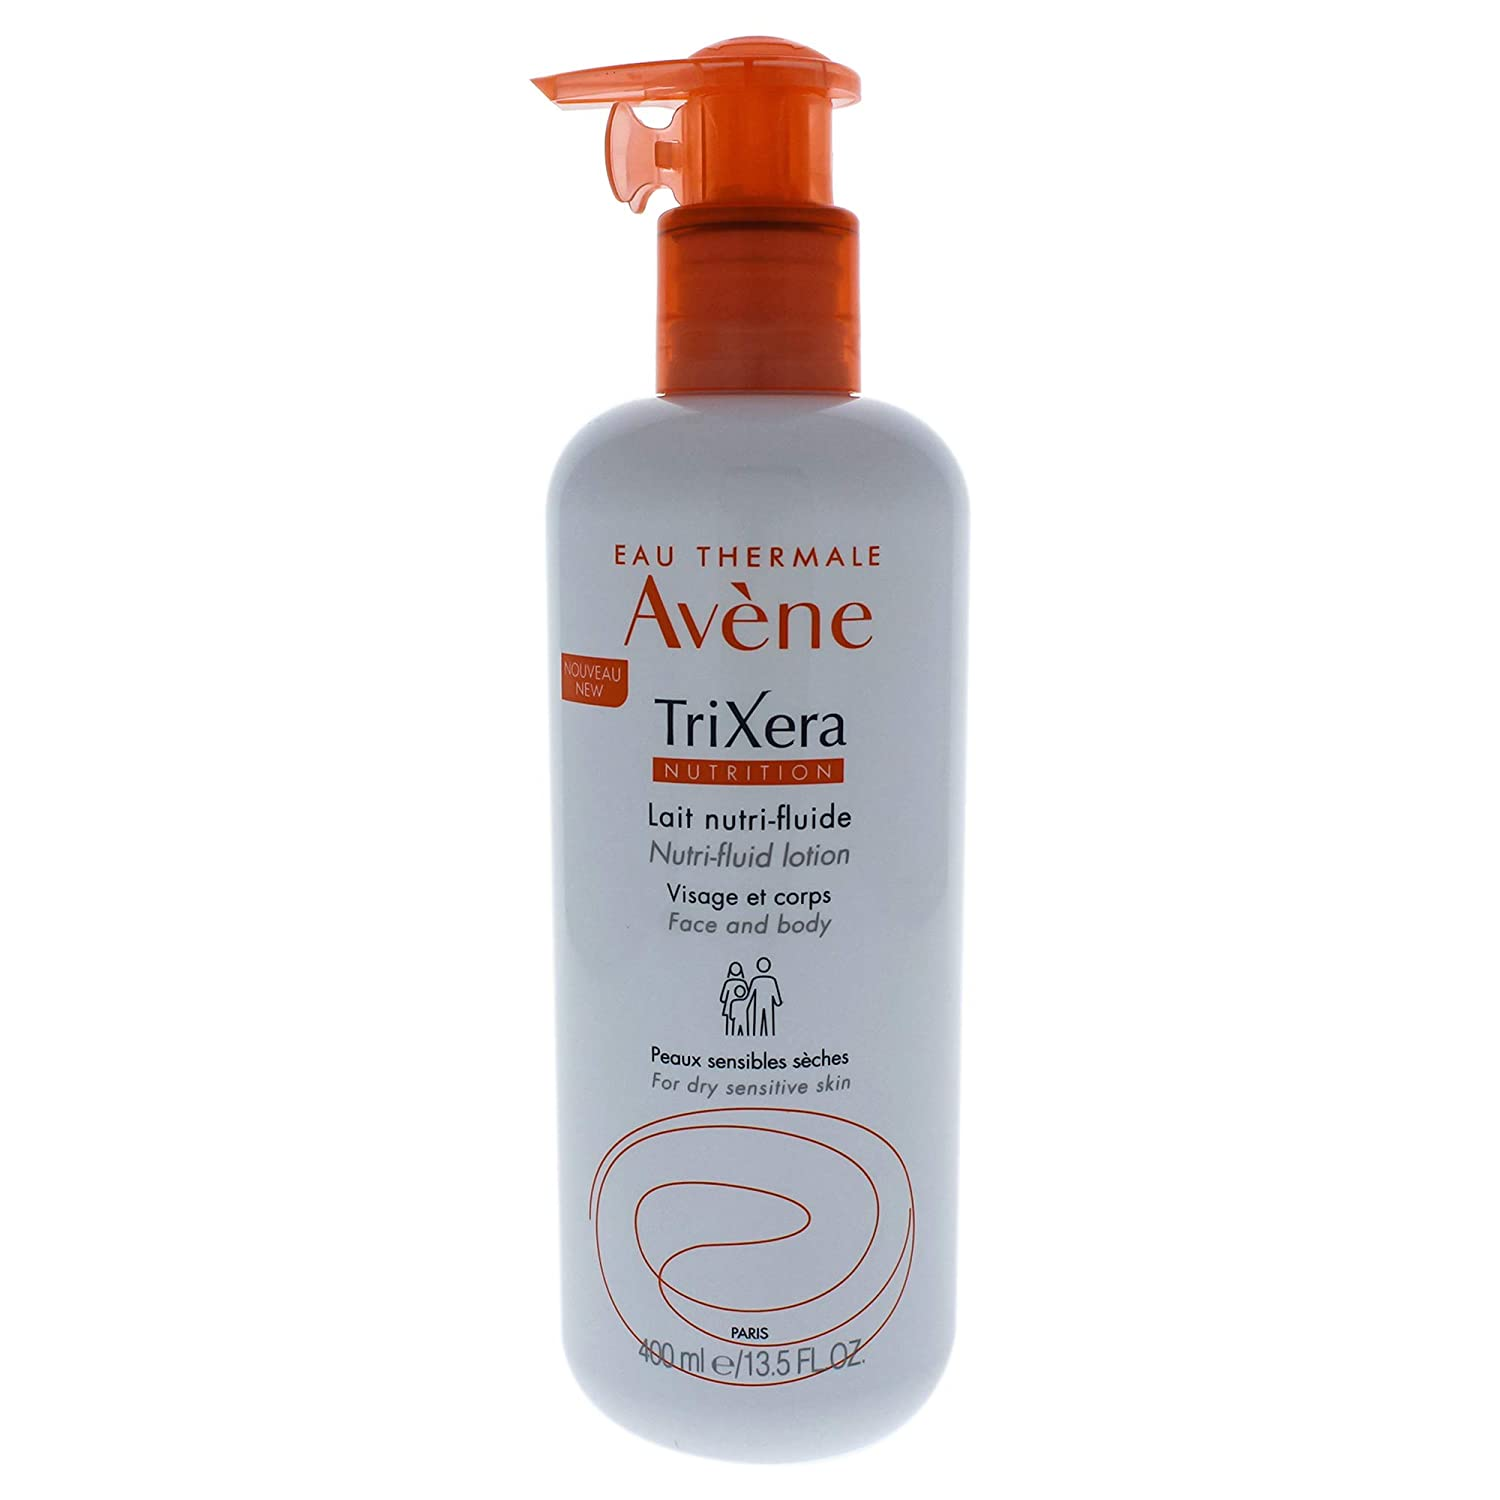 Eau Thermale Avene Trixera Nutrition Nutri-Fluid Lotion, Ceramides, Dry, Face and Body